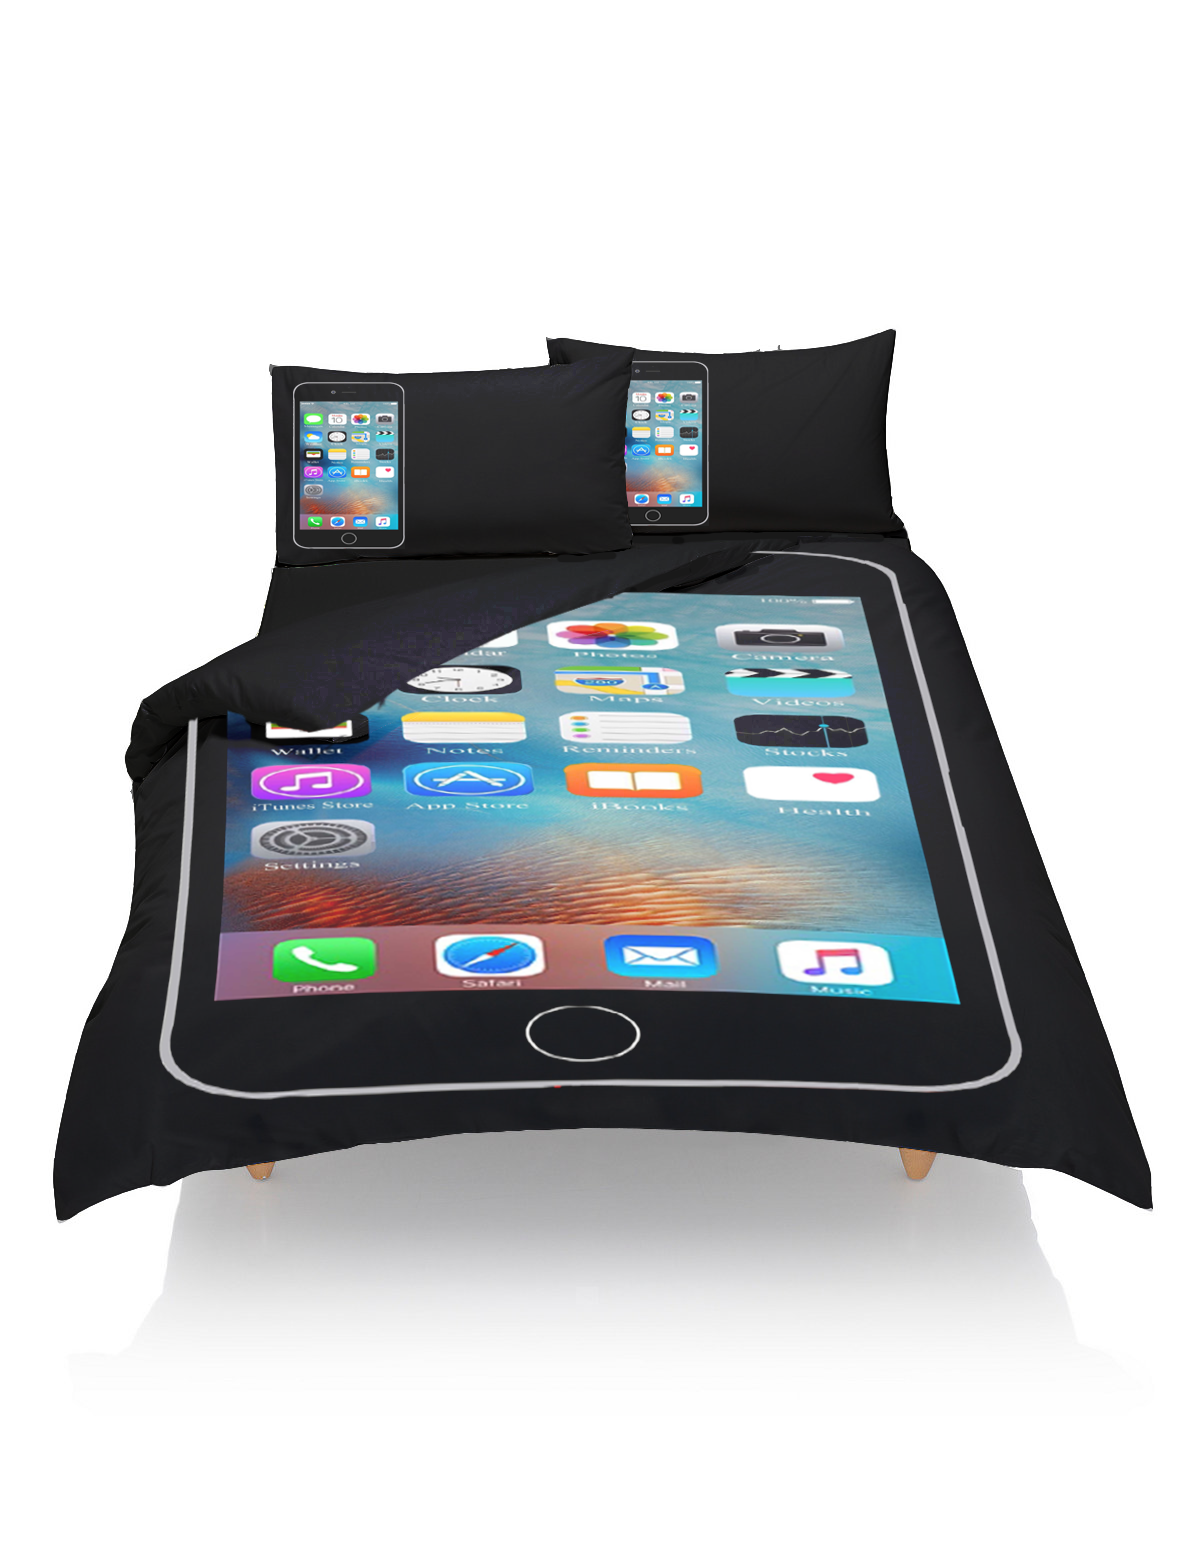 Uncategorized Unique Pillowcases a unique iphone duvet cover and pillowcase bedding print perfect for teamiphone exclusive